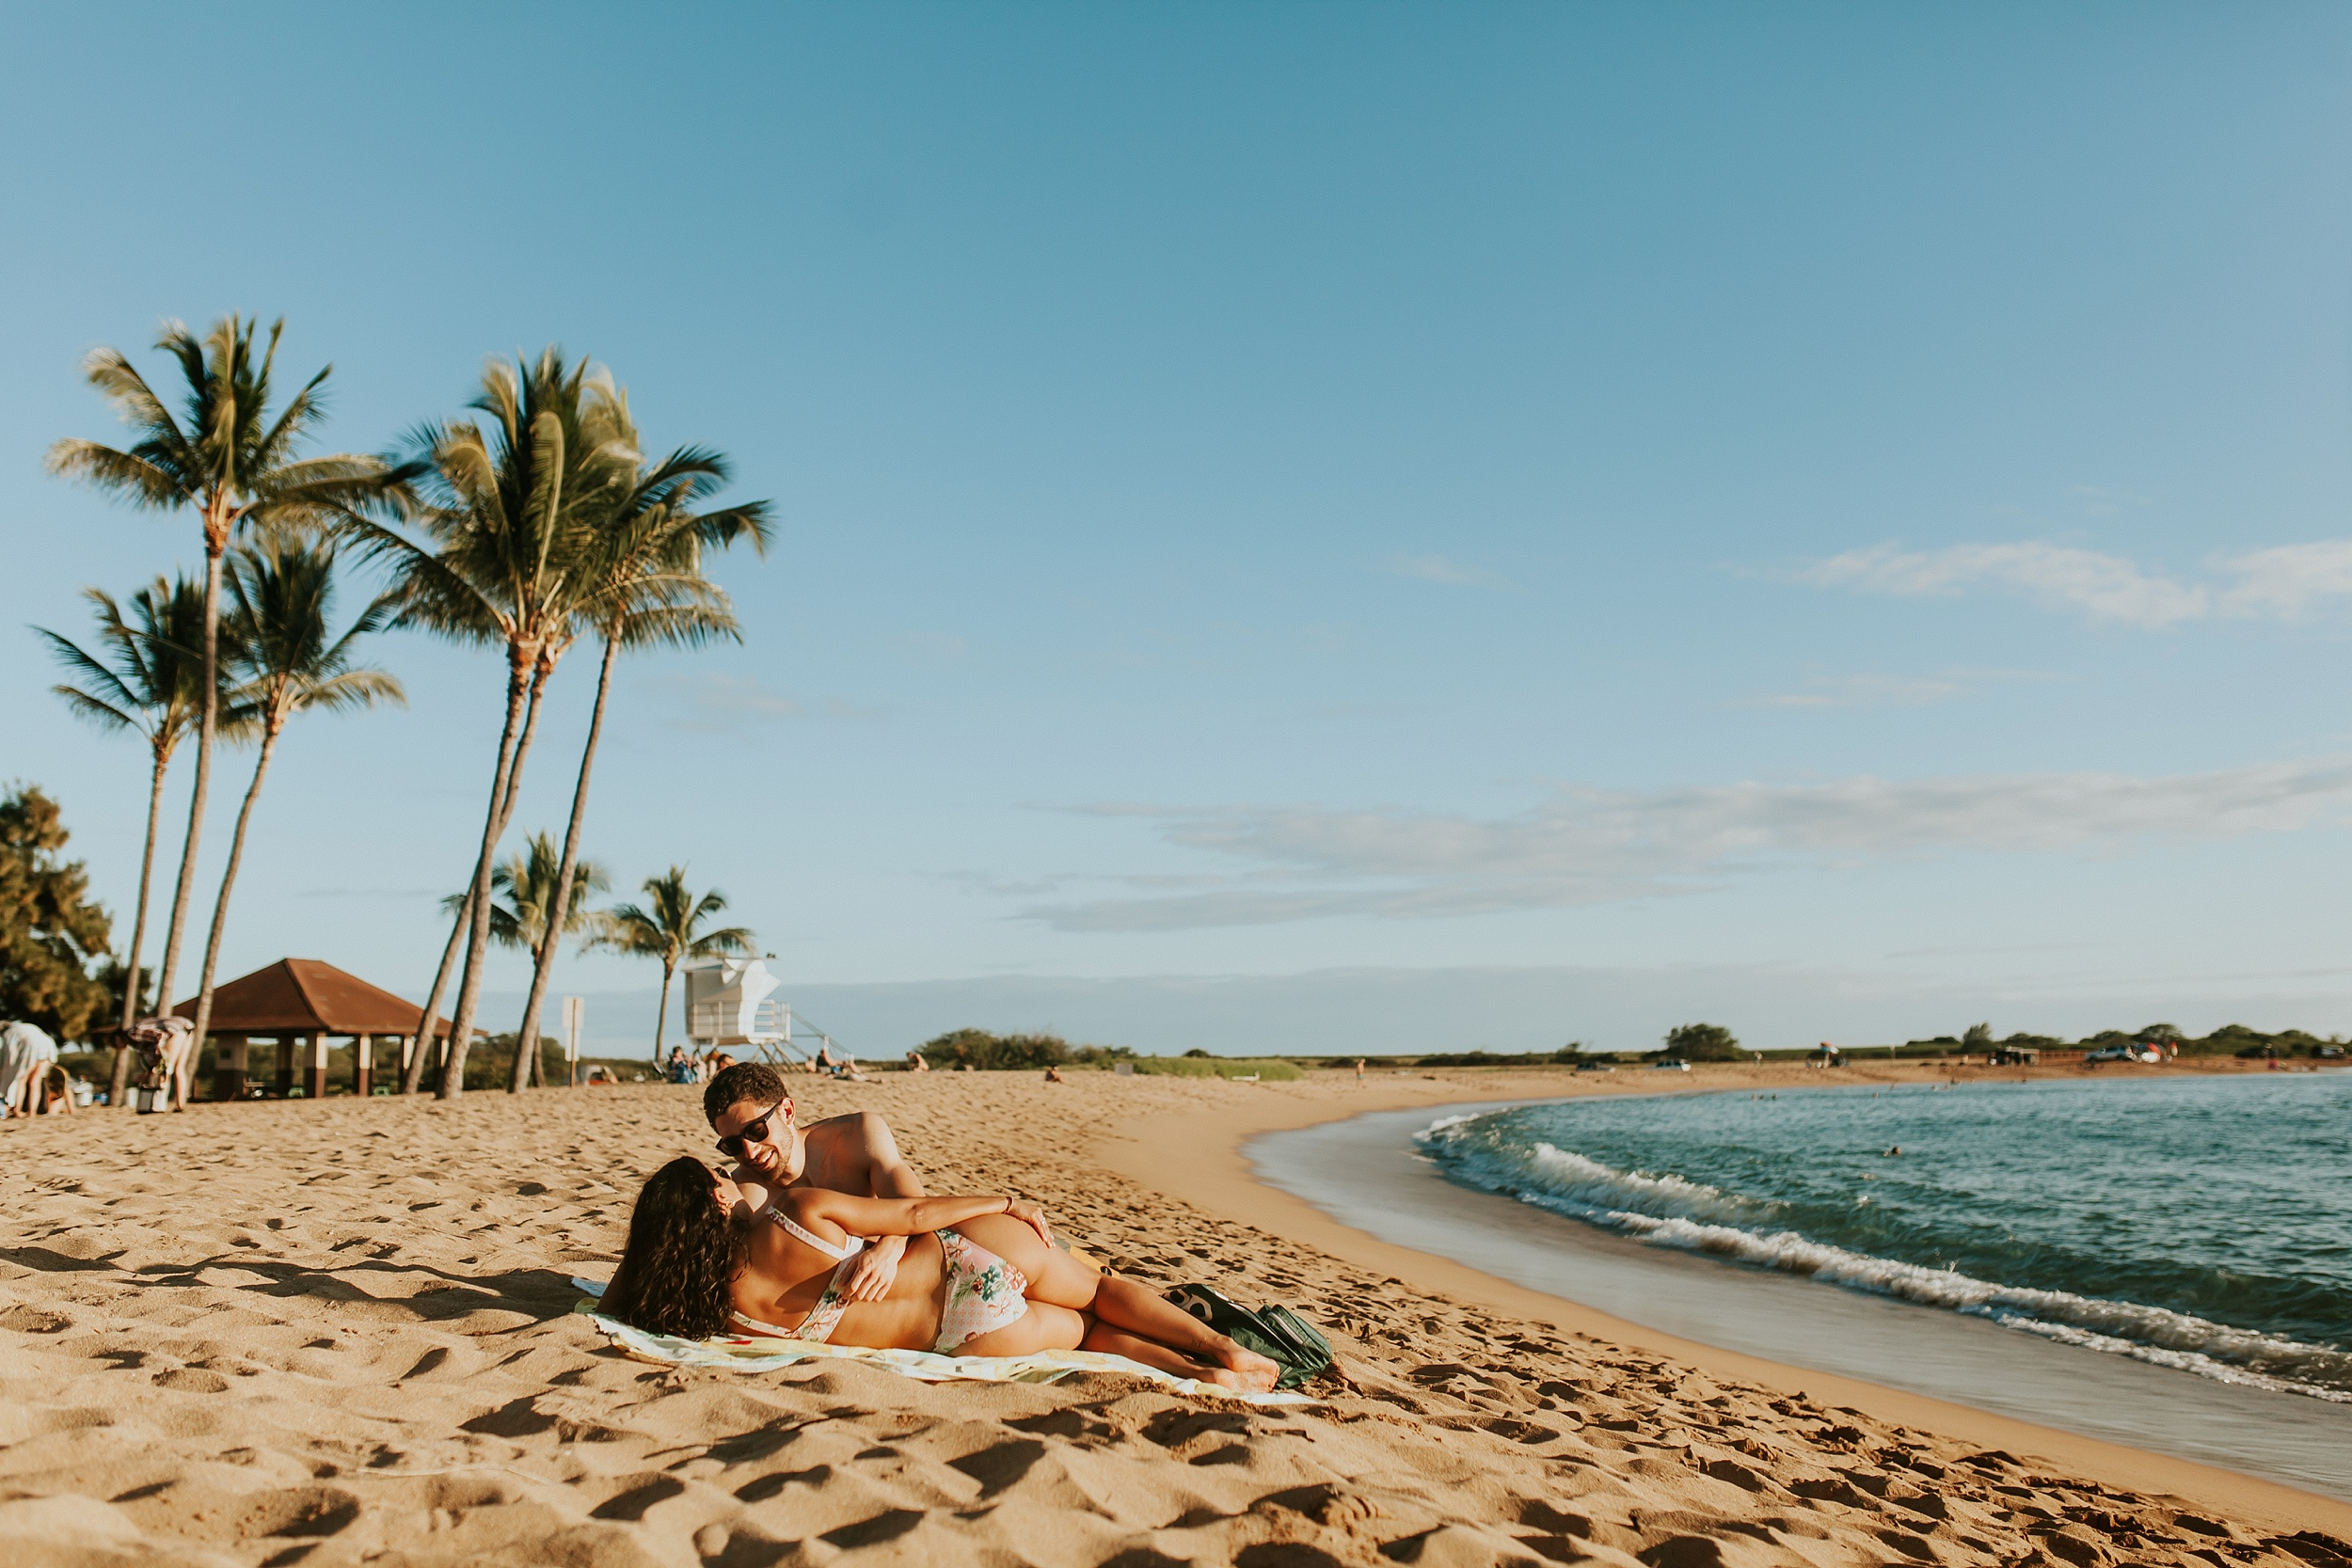 Hawaii_Kauai_Couple_Adventure_Photo_Session-3.jpg